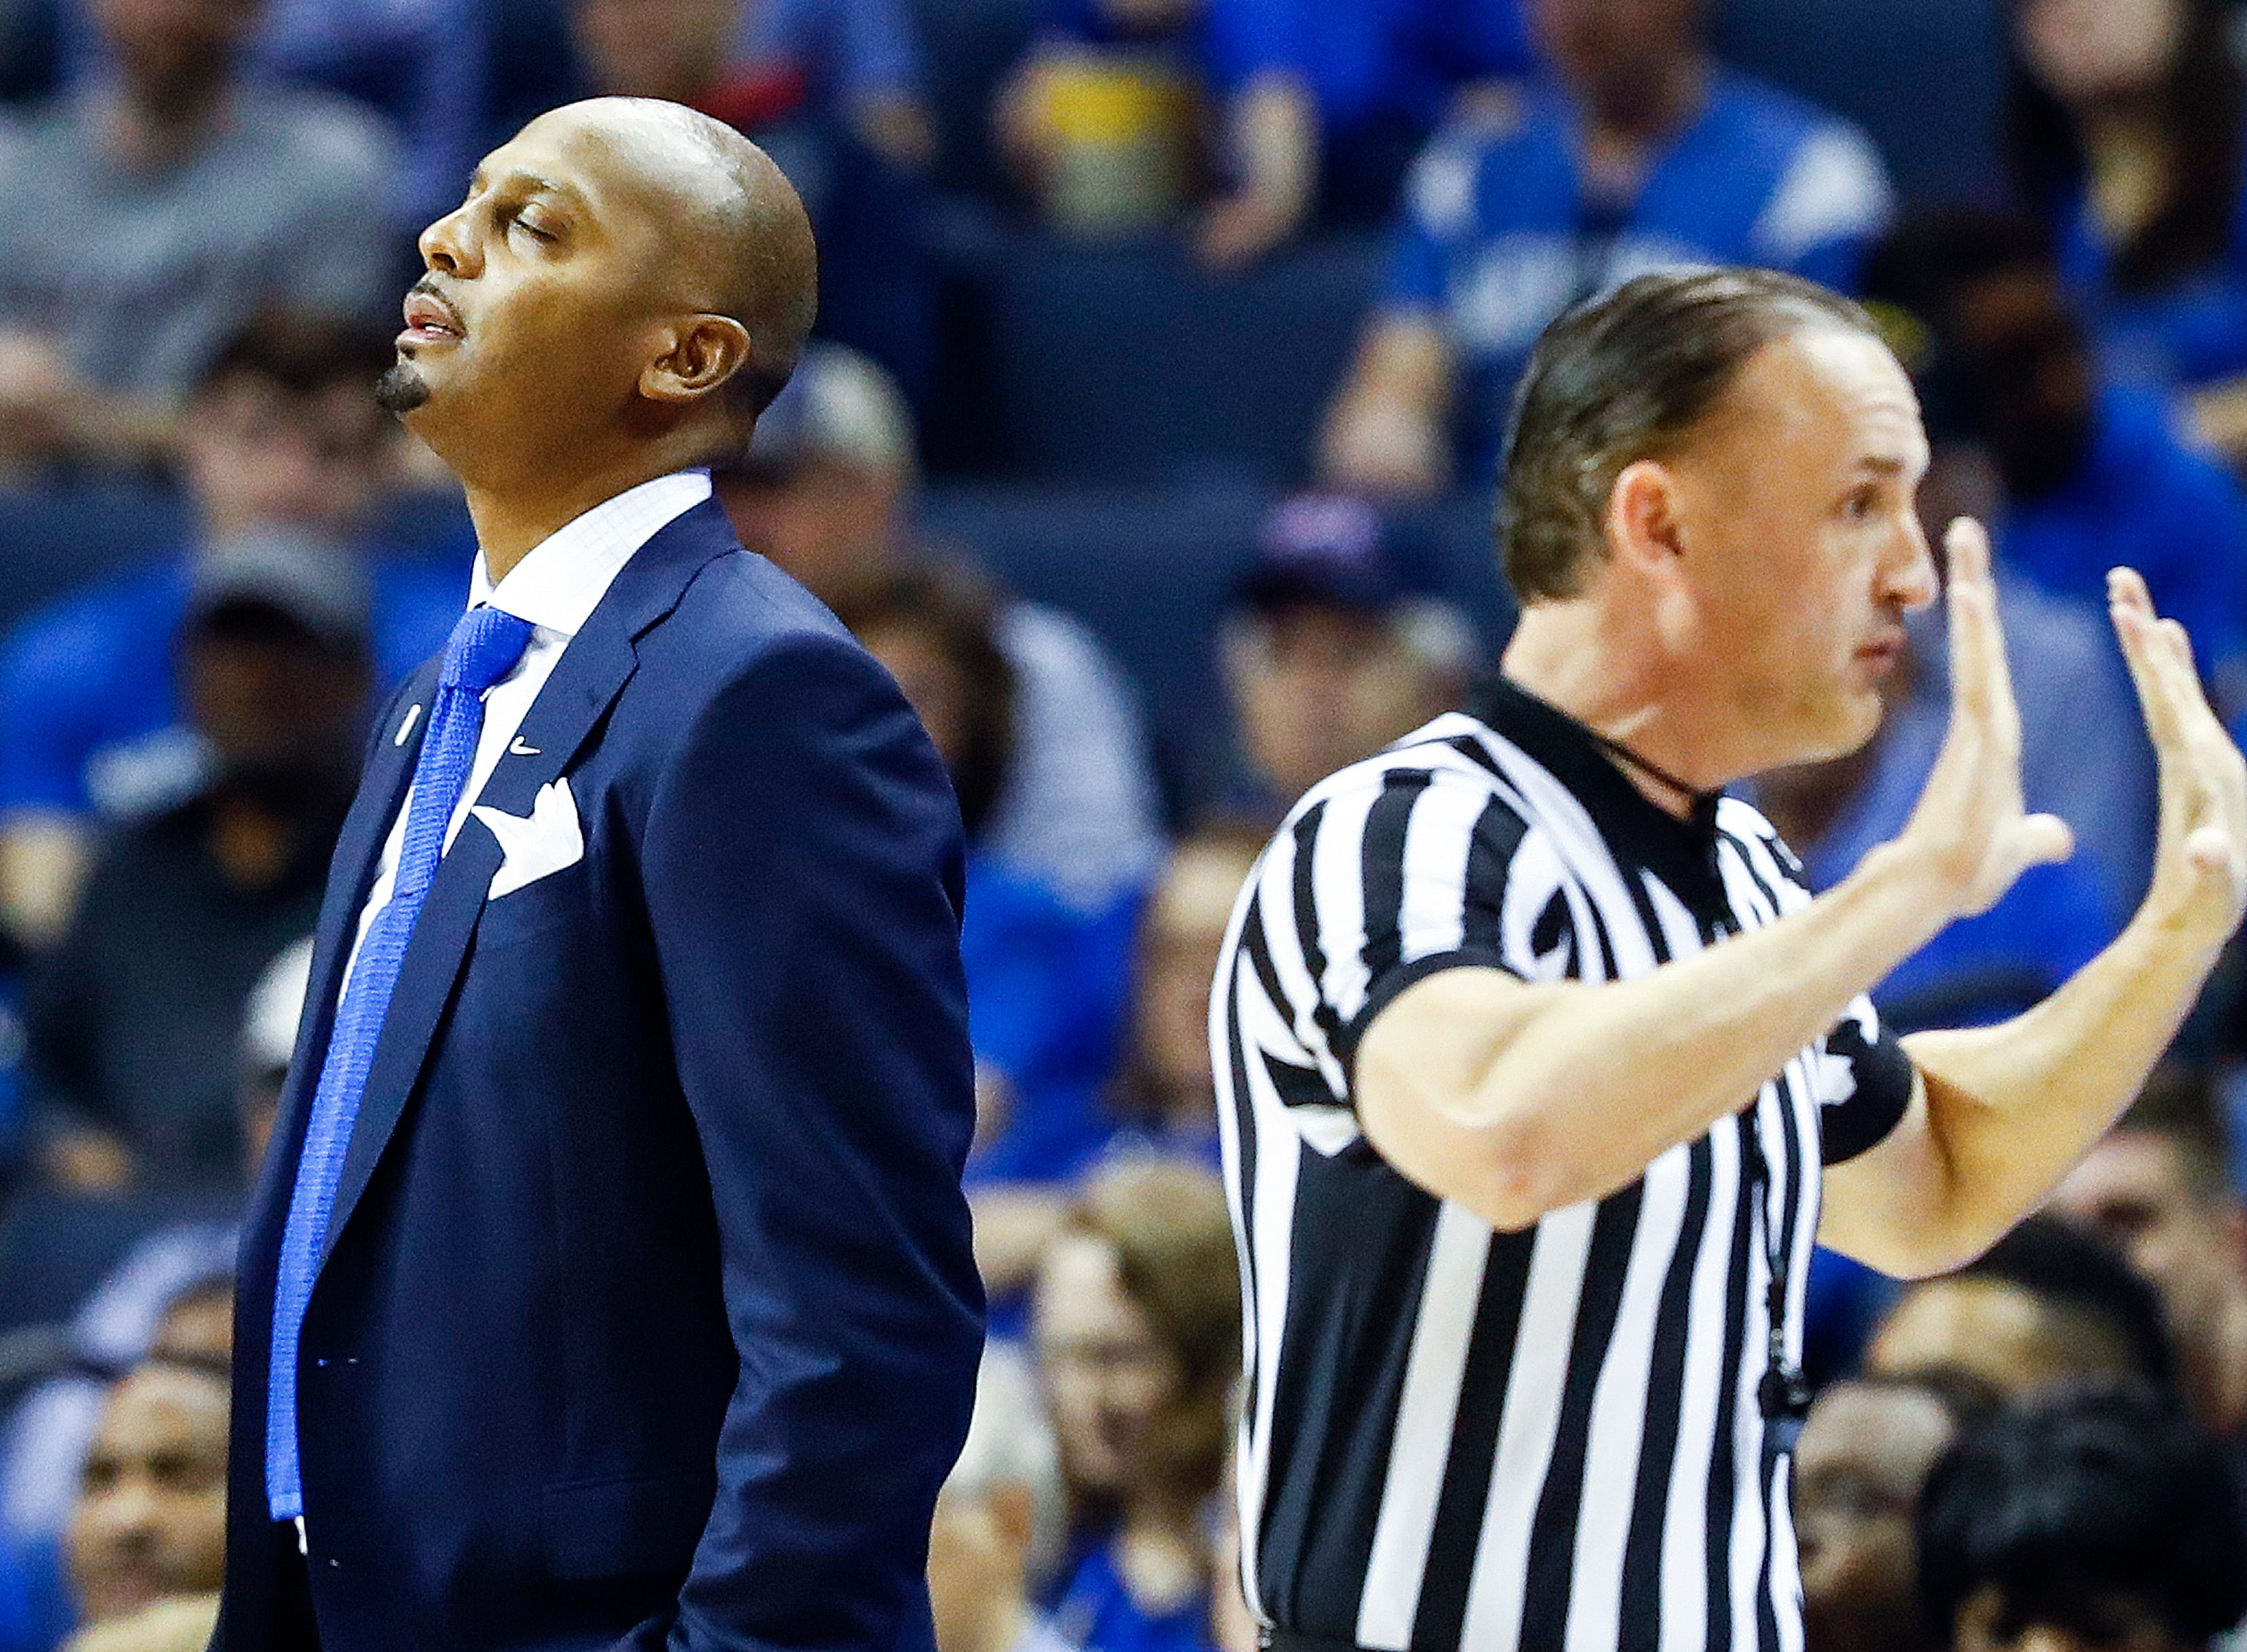 Memphis head coach Penny Hardaway (left0 reacts to an officials foul call against the Tigers during action against Tulane in their first round AAC Tournament game at the  FedExForum, Thursday, March 14, 2019.